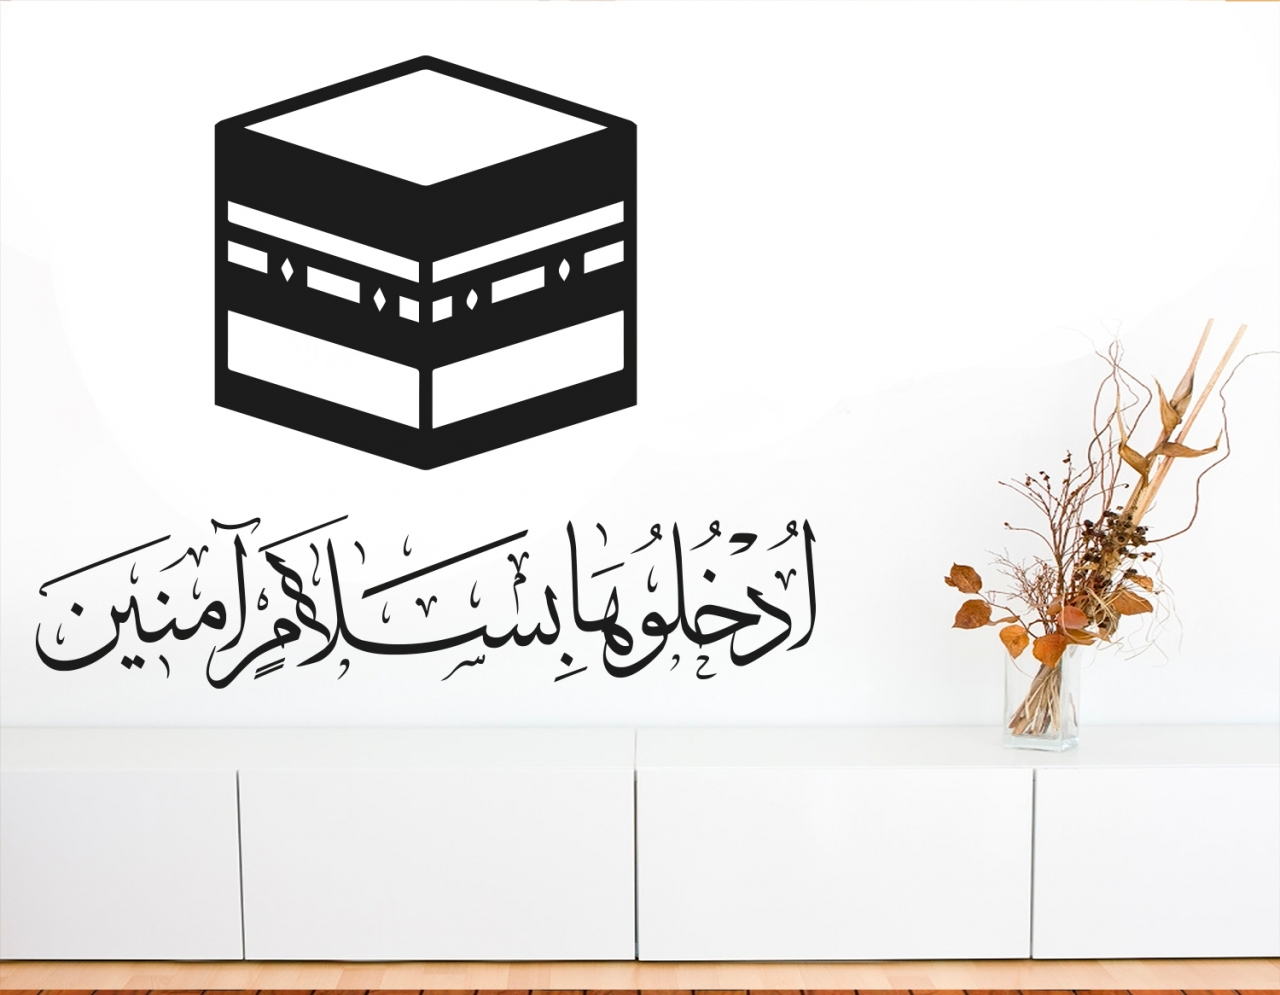 kaaba mekka wandtattoo mit koranvers verziert schia der online shop f r schiiten. Black Bedroom Furniture Sets. Home Design Ideas